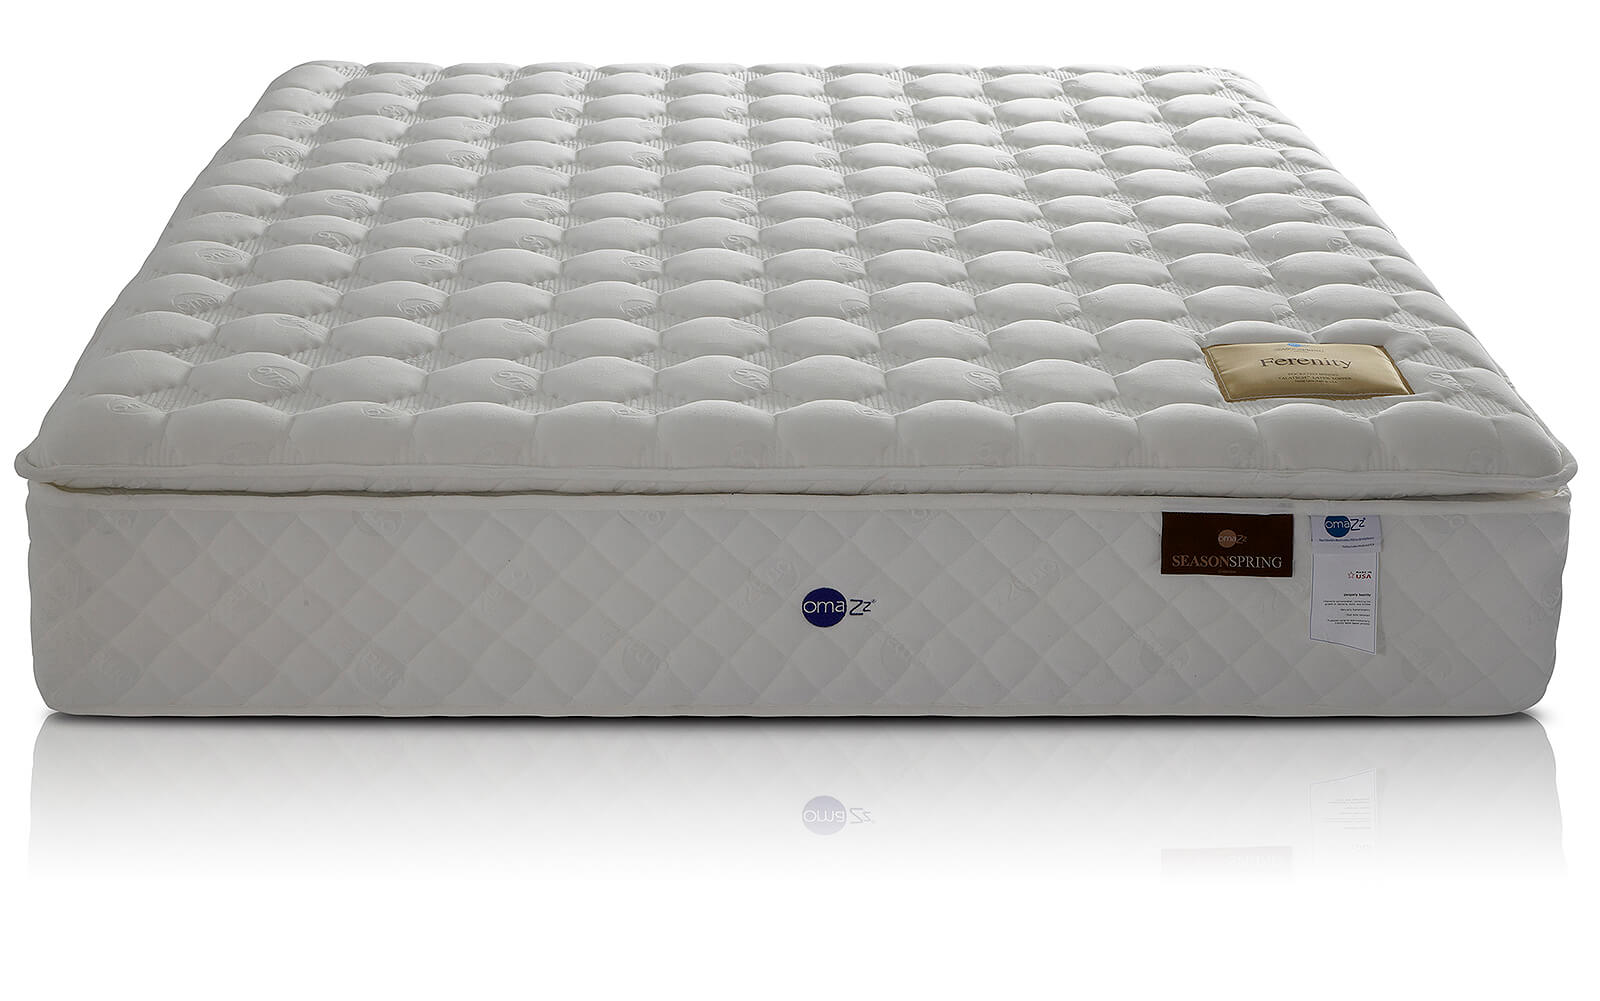 Omazz Mattress Ferenity